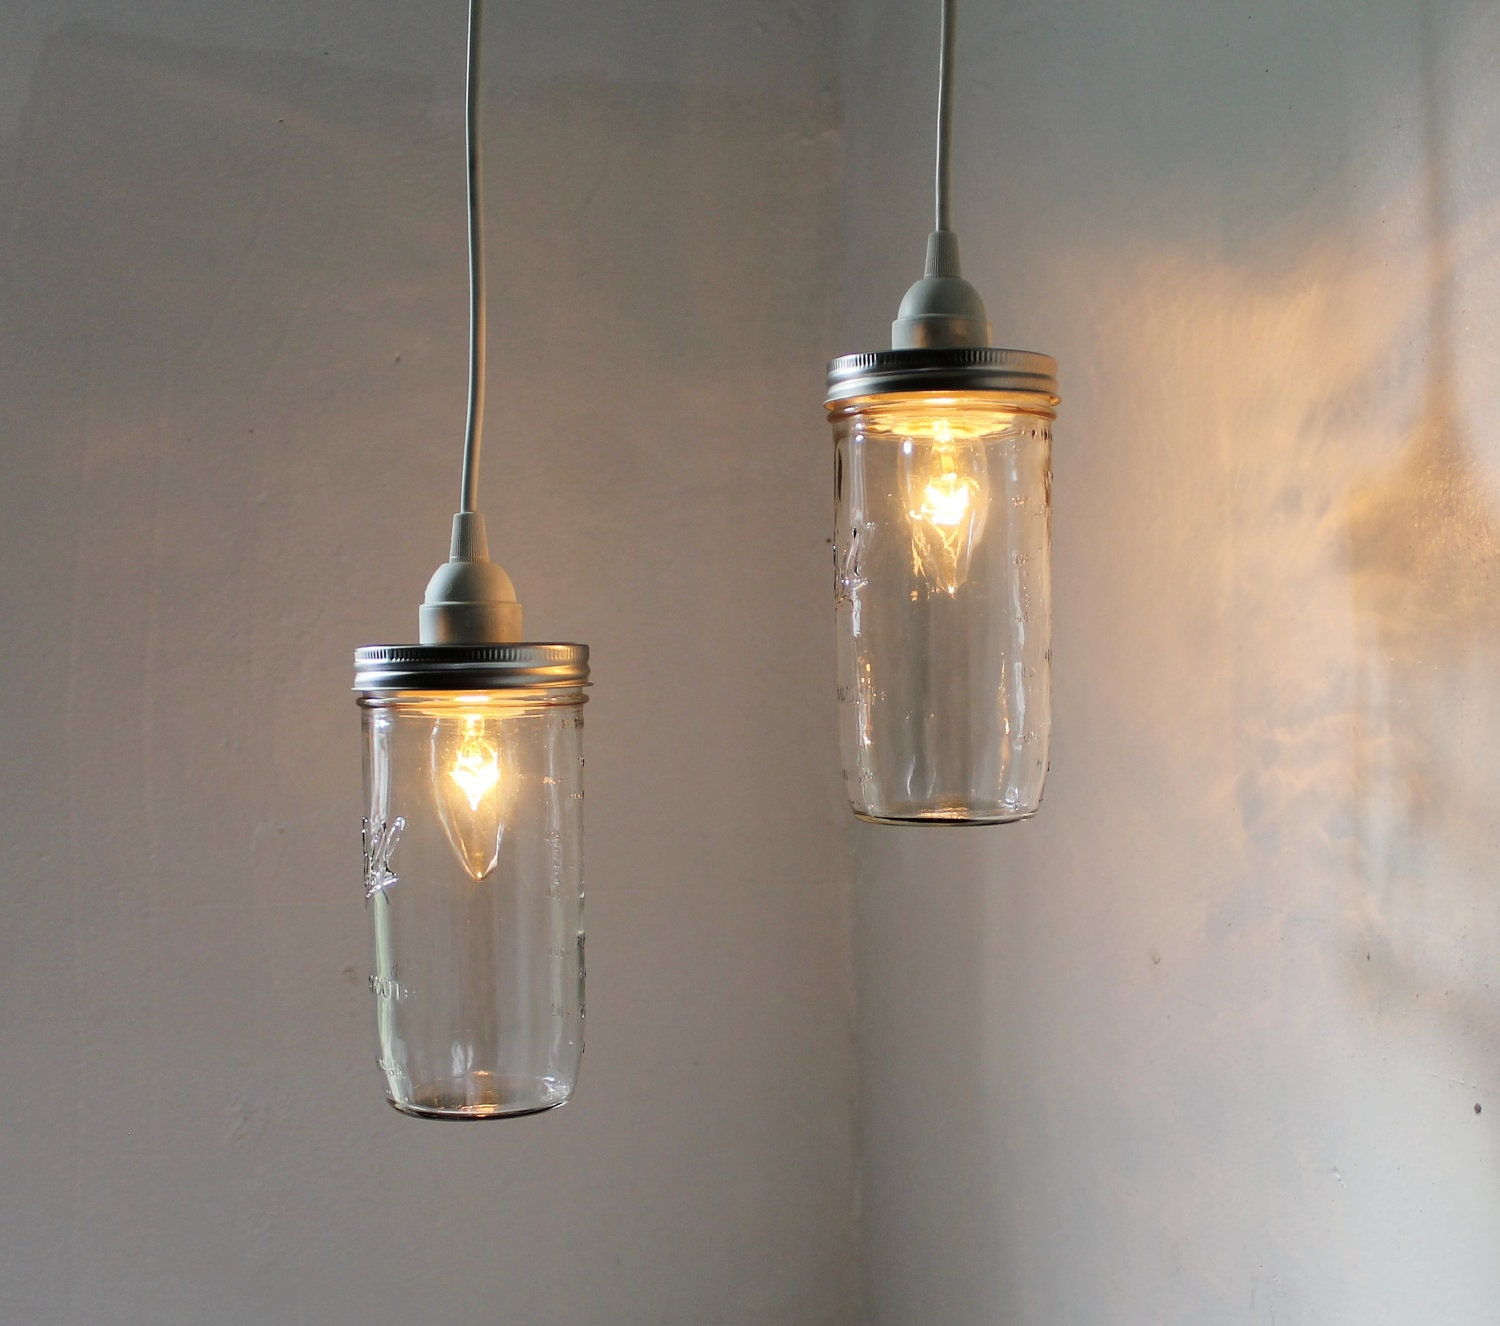 hanging lighting fixtures. Hanging Lighting Fixtures. 🔎zoom Fixtures Etsy A